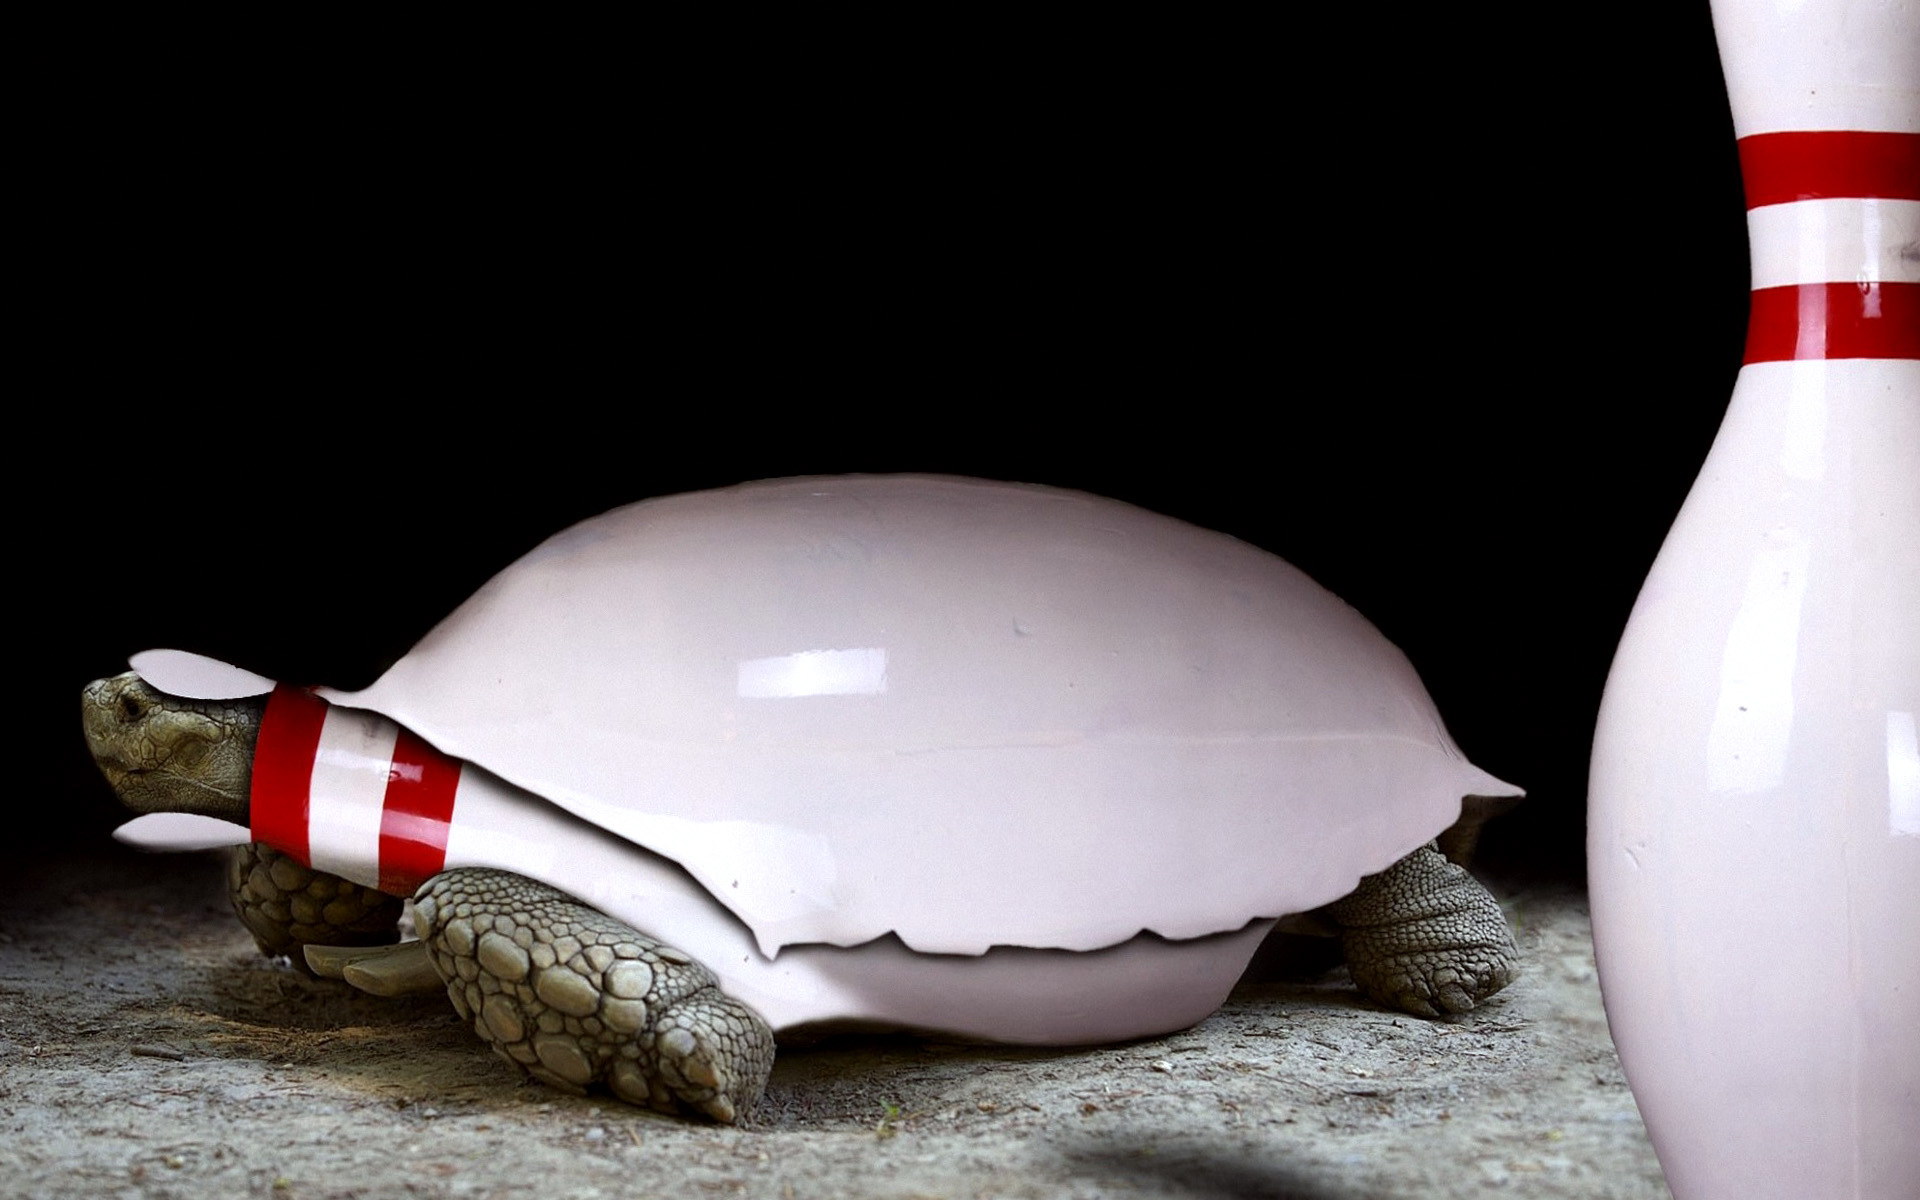 Cool 3d Abstract Wallpapers Funny Bowling On Turtle Wallpapers Hd Desktop And Mobile